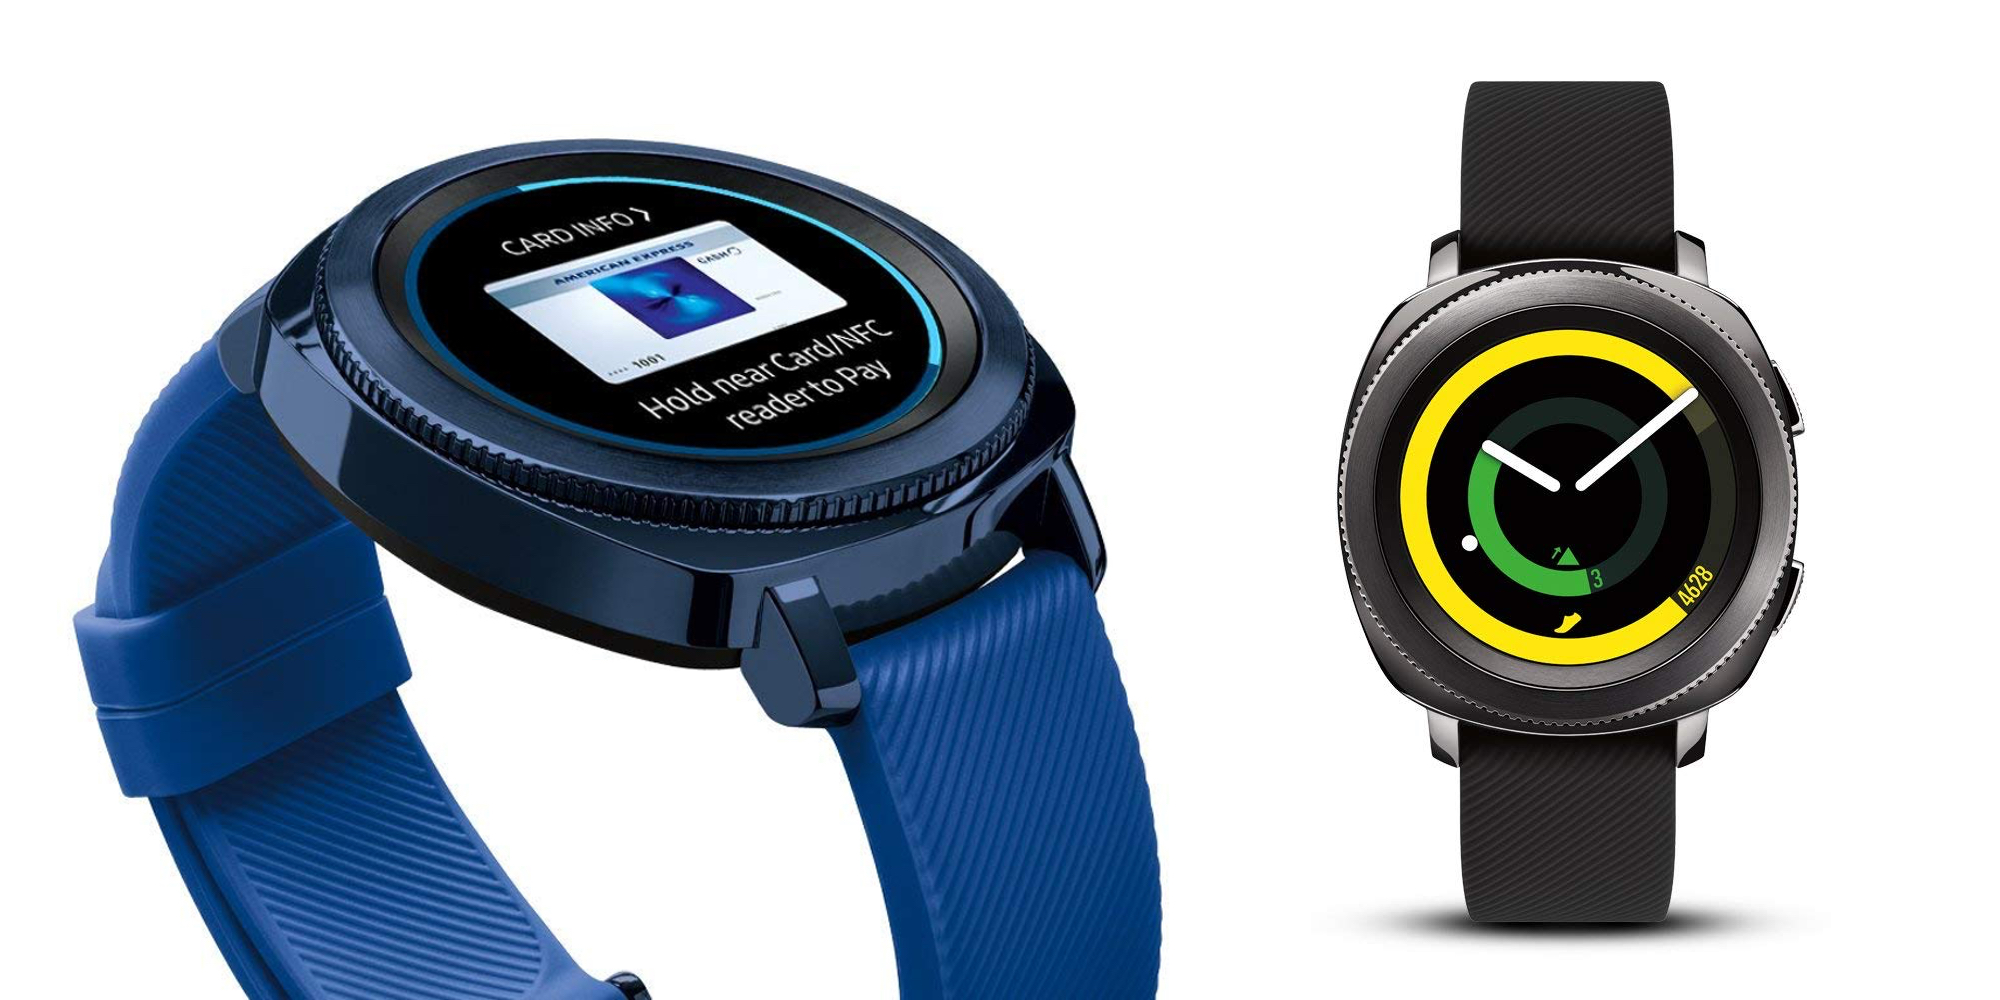 Put Samsung's Gear Sport Smartwatch on your wrist for a low of $149 (Reg. $190+)